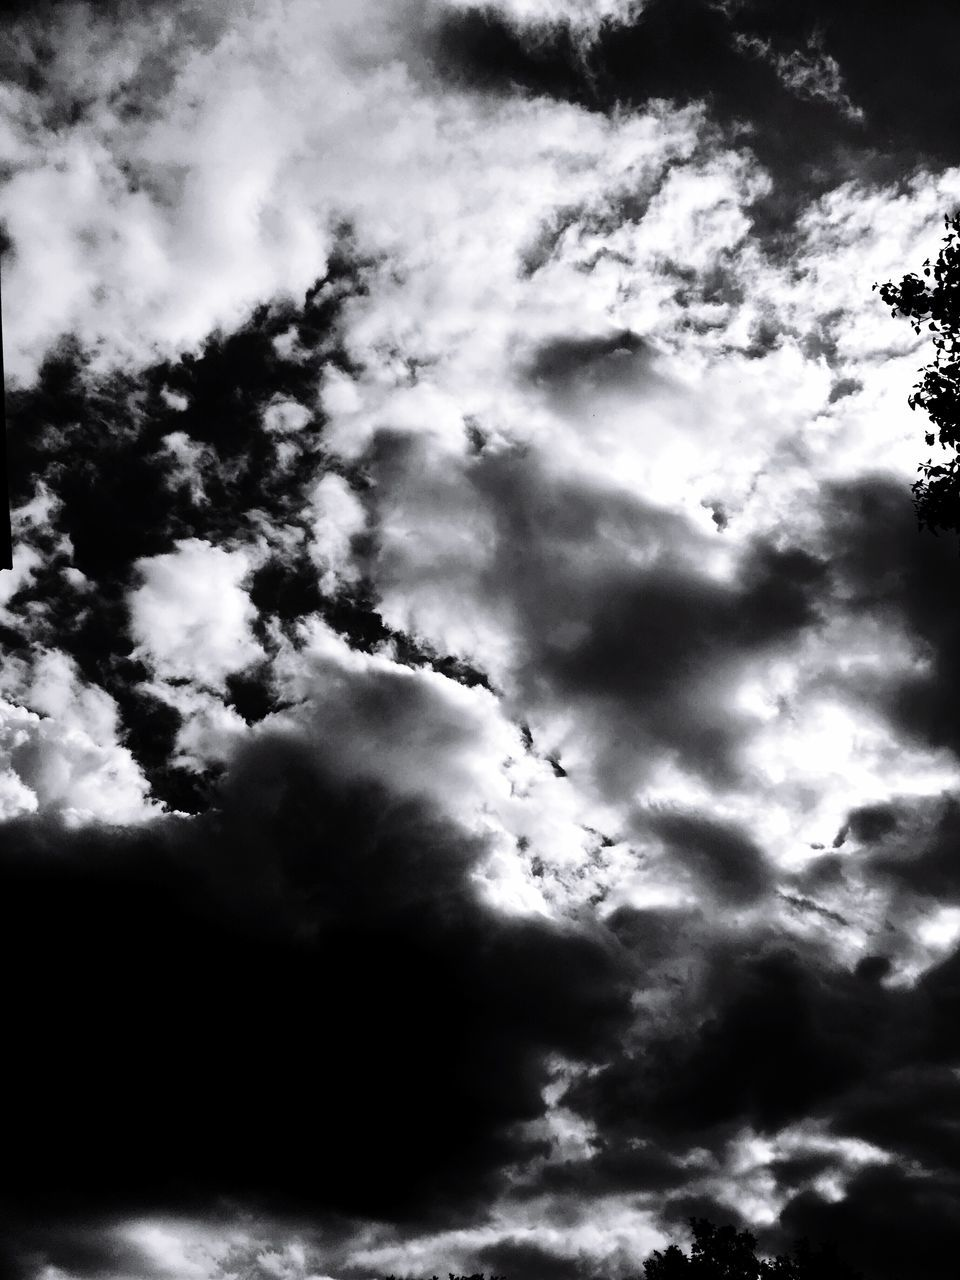 beauty in nature, nature, sky, low angle view, cloud - sky, cloudscape, atmospheric mood, backgrounds, scenics, majestic, tranquility, dramatic sky, weather, no people, sky only, outdoors, idyllic, tranquil scene, awe, day, silhouette, full frame, storm cloud, tree